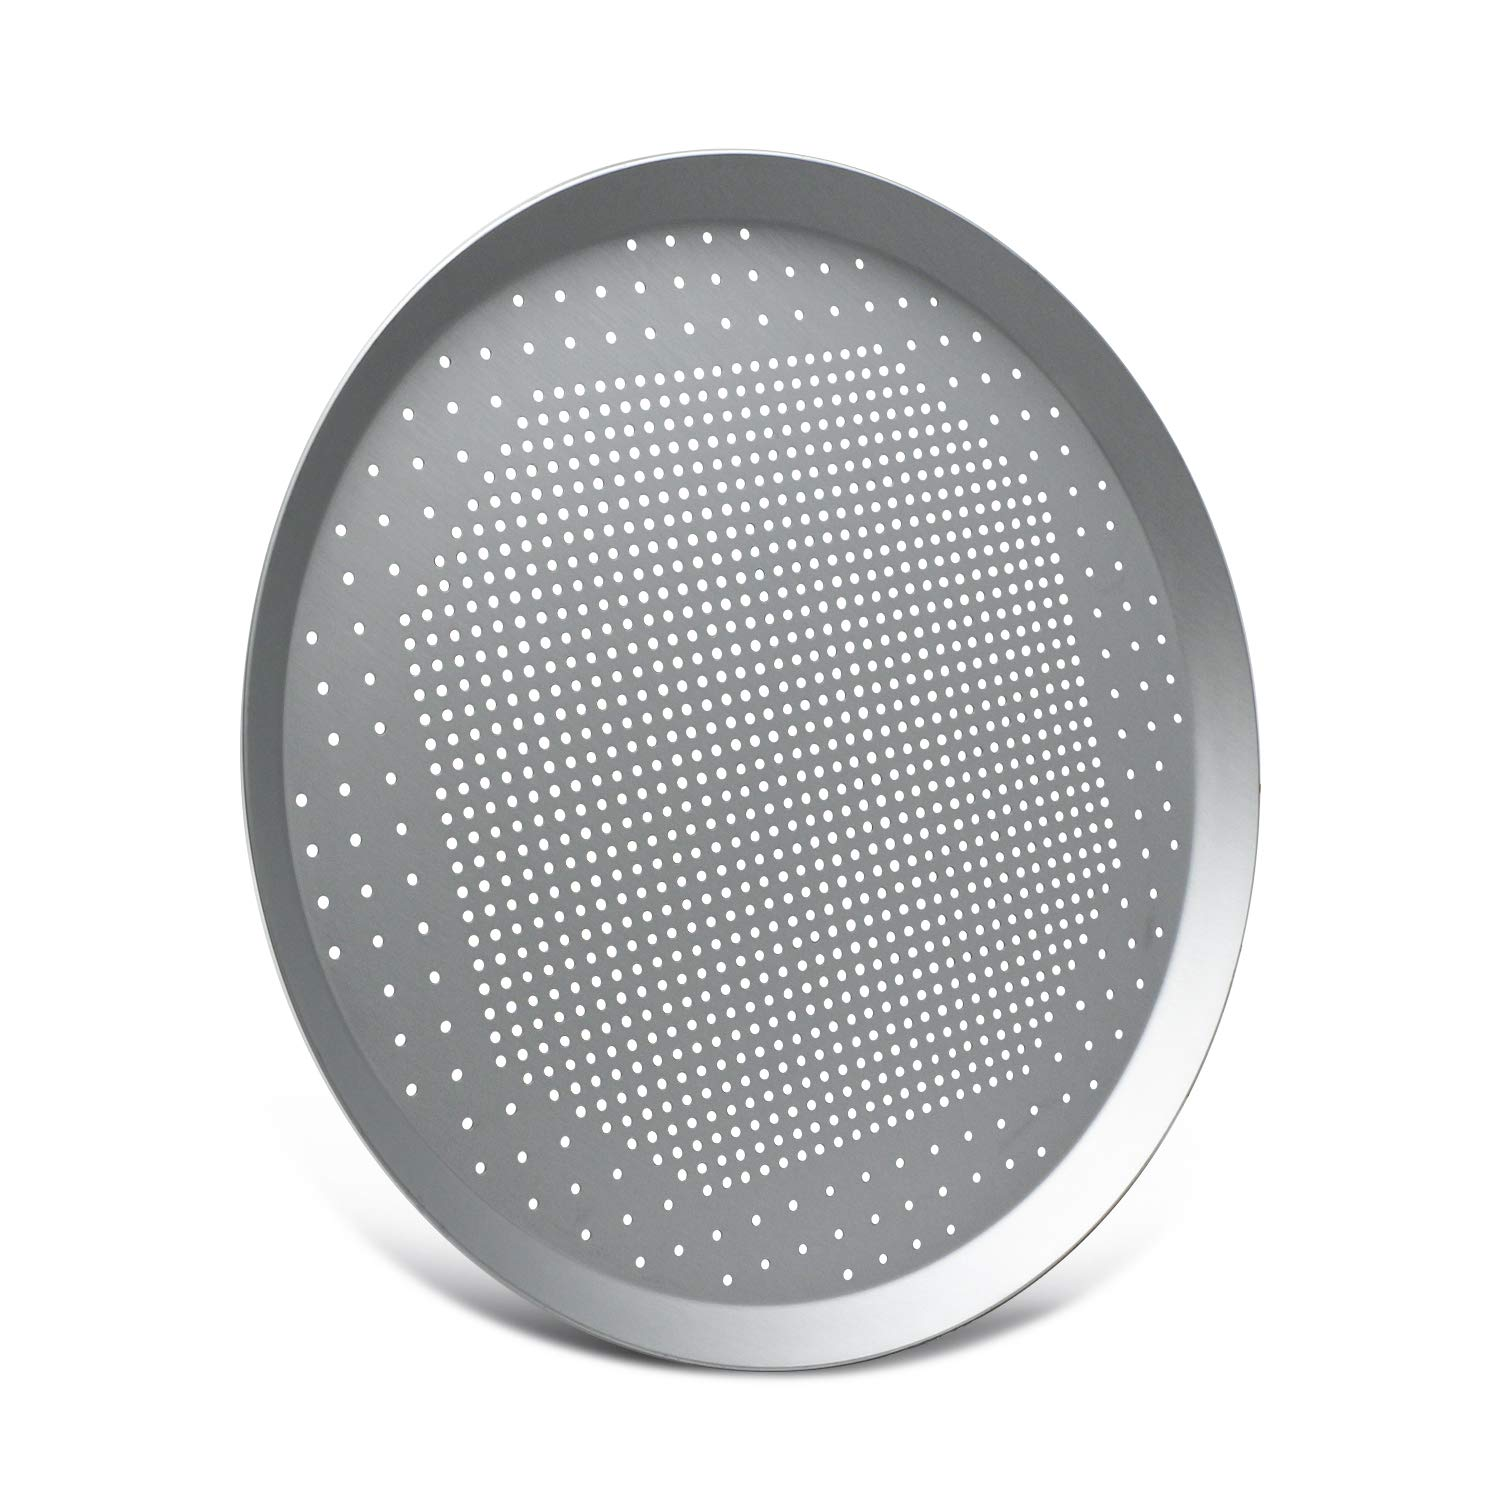 Pizza Pan with Holes, Beasea 13 Inch Aluminum Alloy Round Pizza Tray Pizza Crisper Pan Pizza Baking Tray Bakeware for Home Restaurant Kitchen